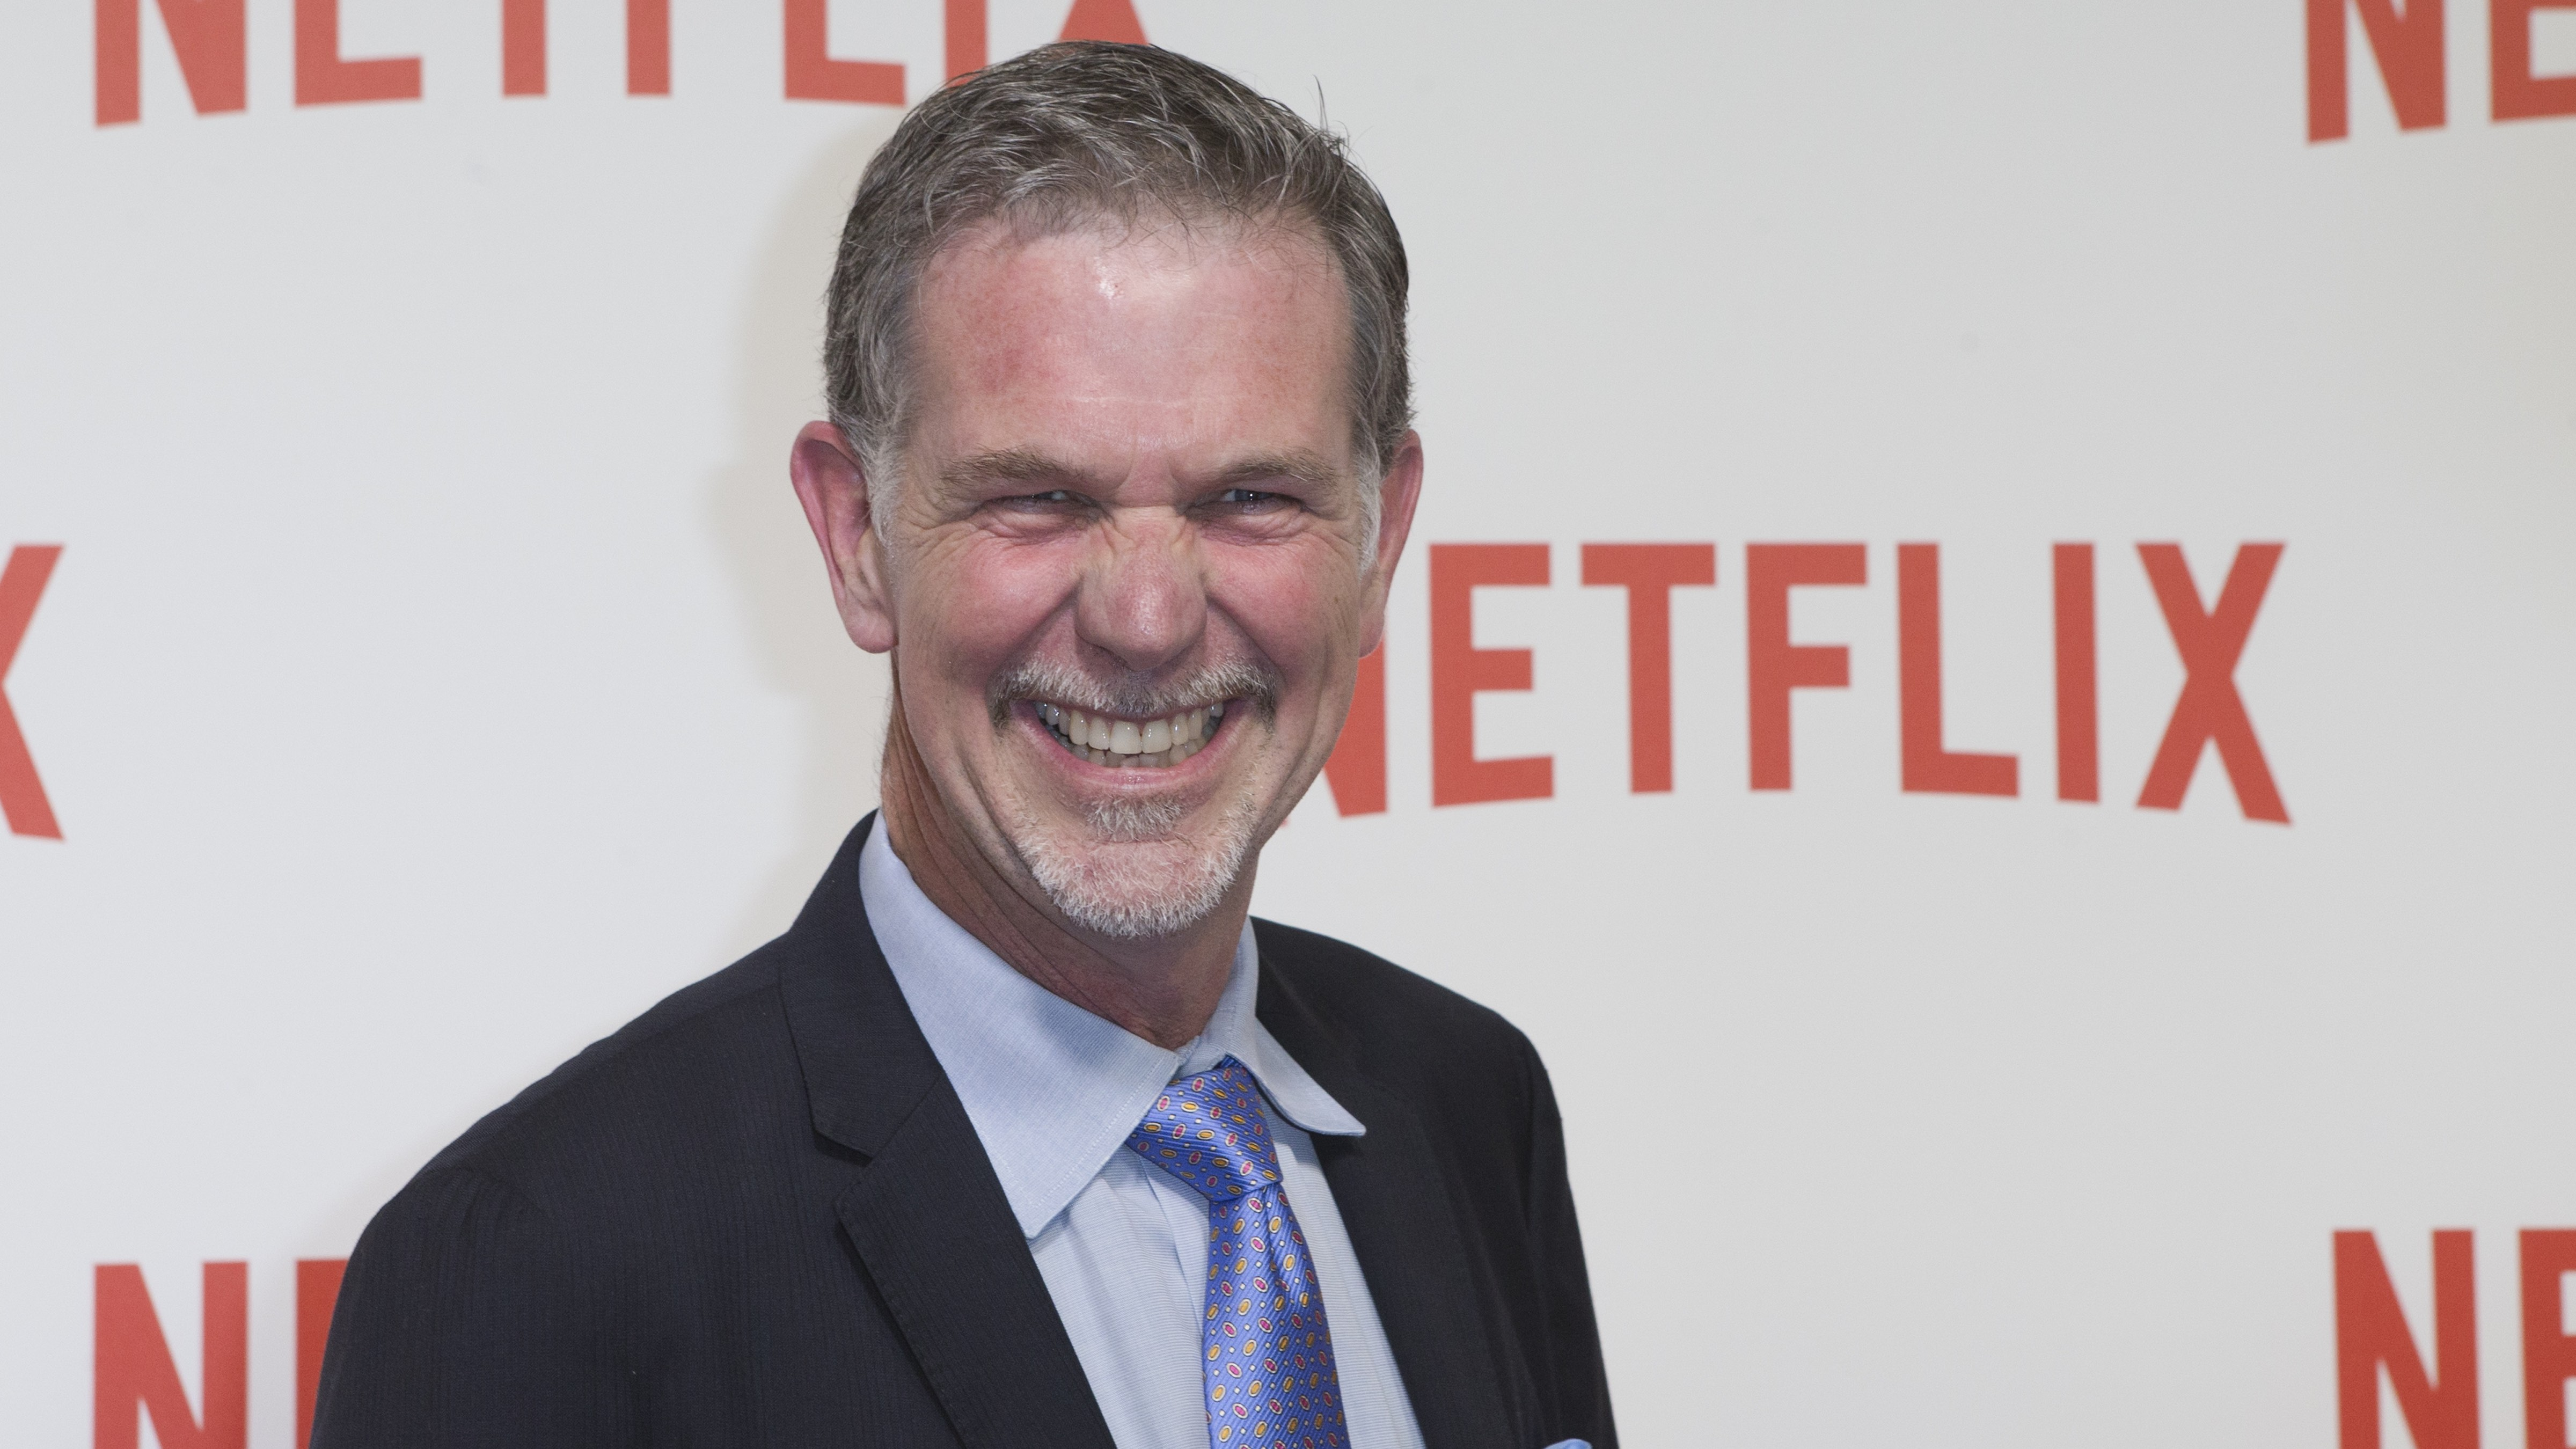 Netflix CEO Reed Hastings arrives for the 'Netflix' Launch Party in Paris, Monday Sept. 15, 2014. (AP Photo/Jacques Brinon)